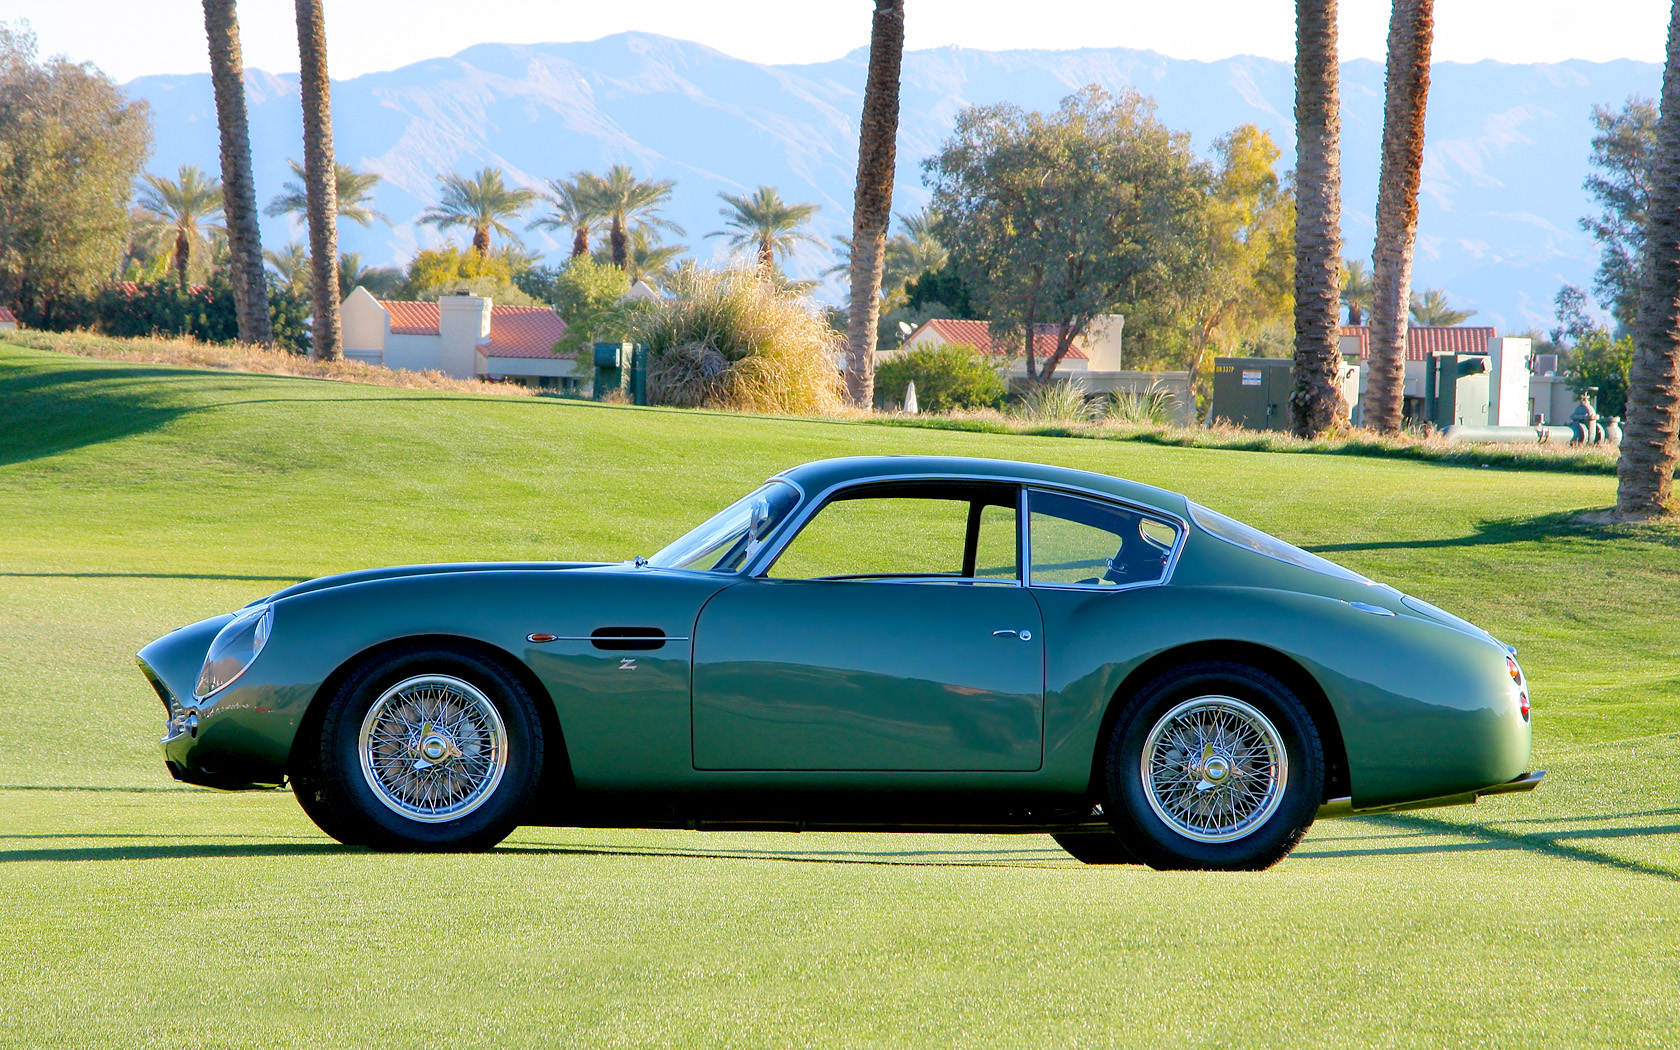 All Types aston db4 zagato : File:1961 Aston Martin DB4 GT Zagato - svl.jpg - Wikimedia Commons